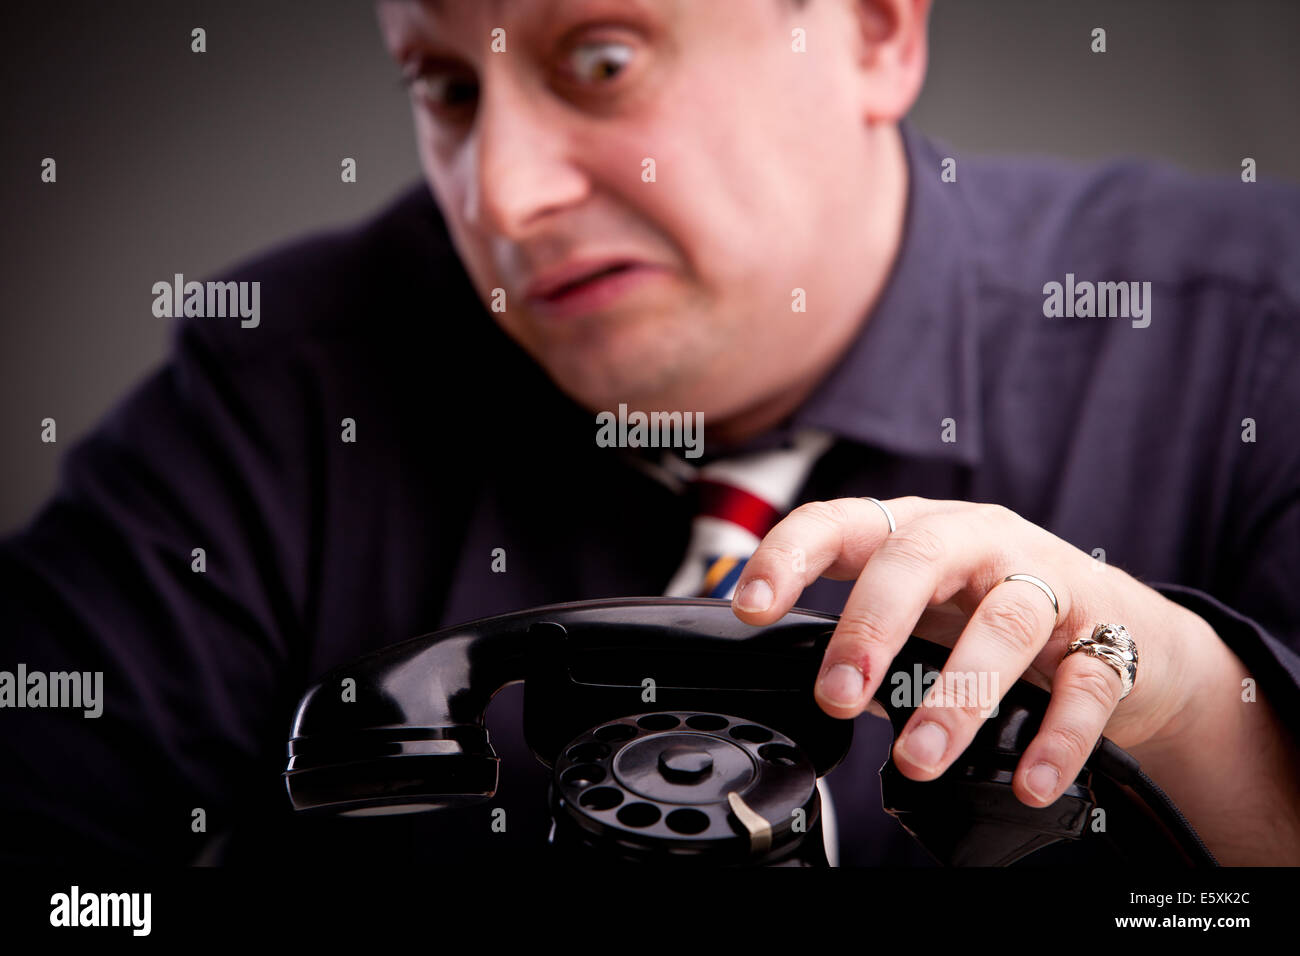 Telephone rings and the clerk is afraid of taking the call - Stock Image